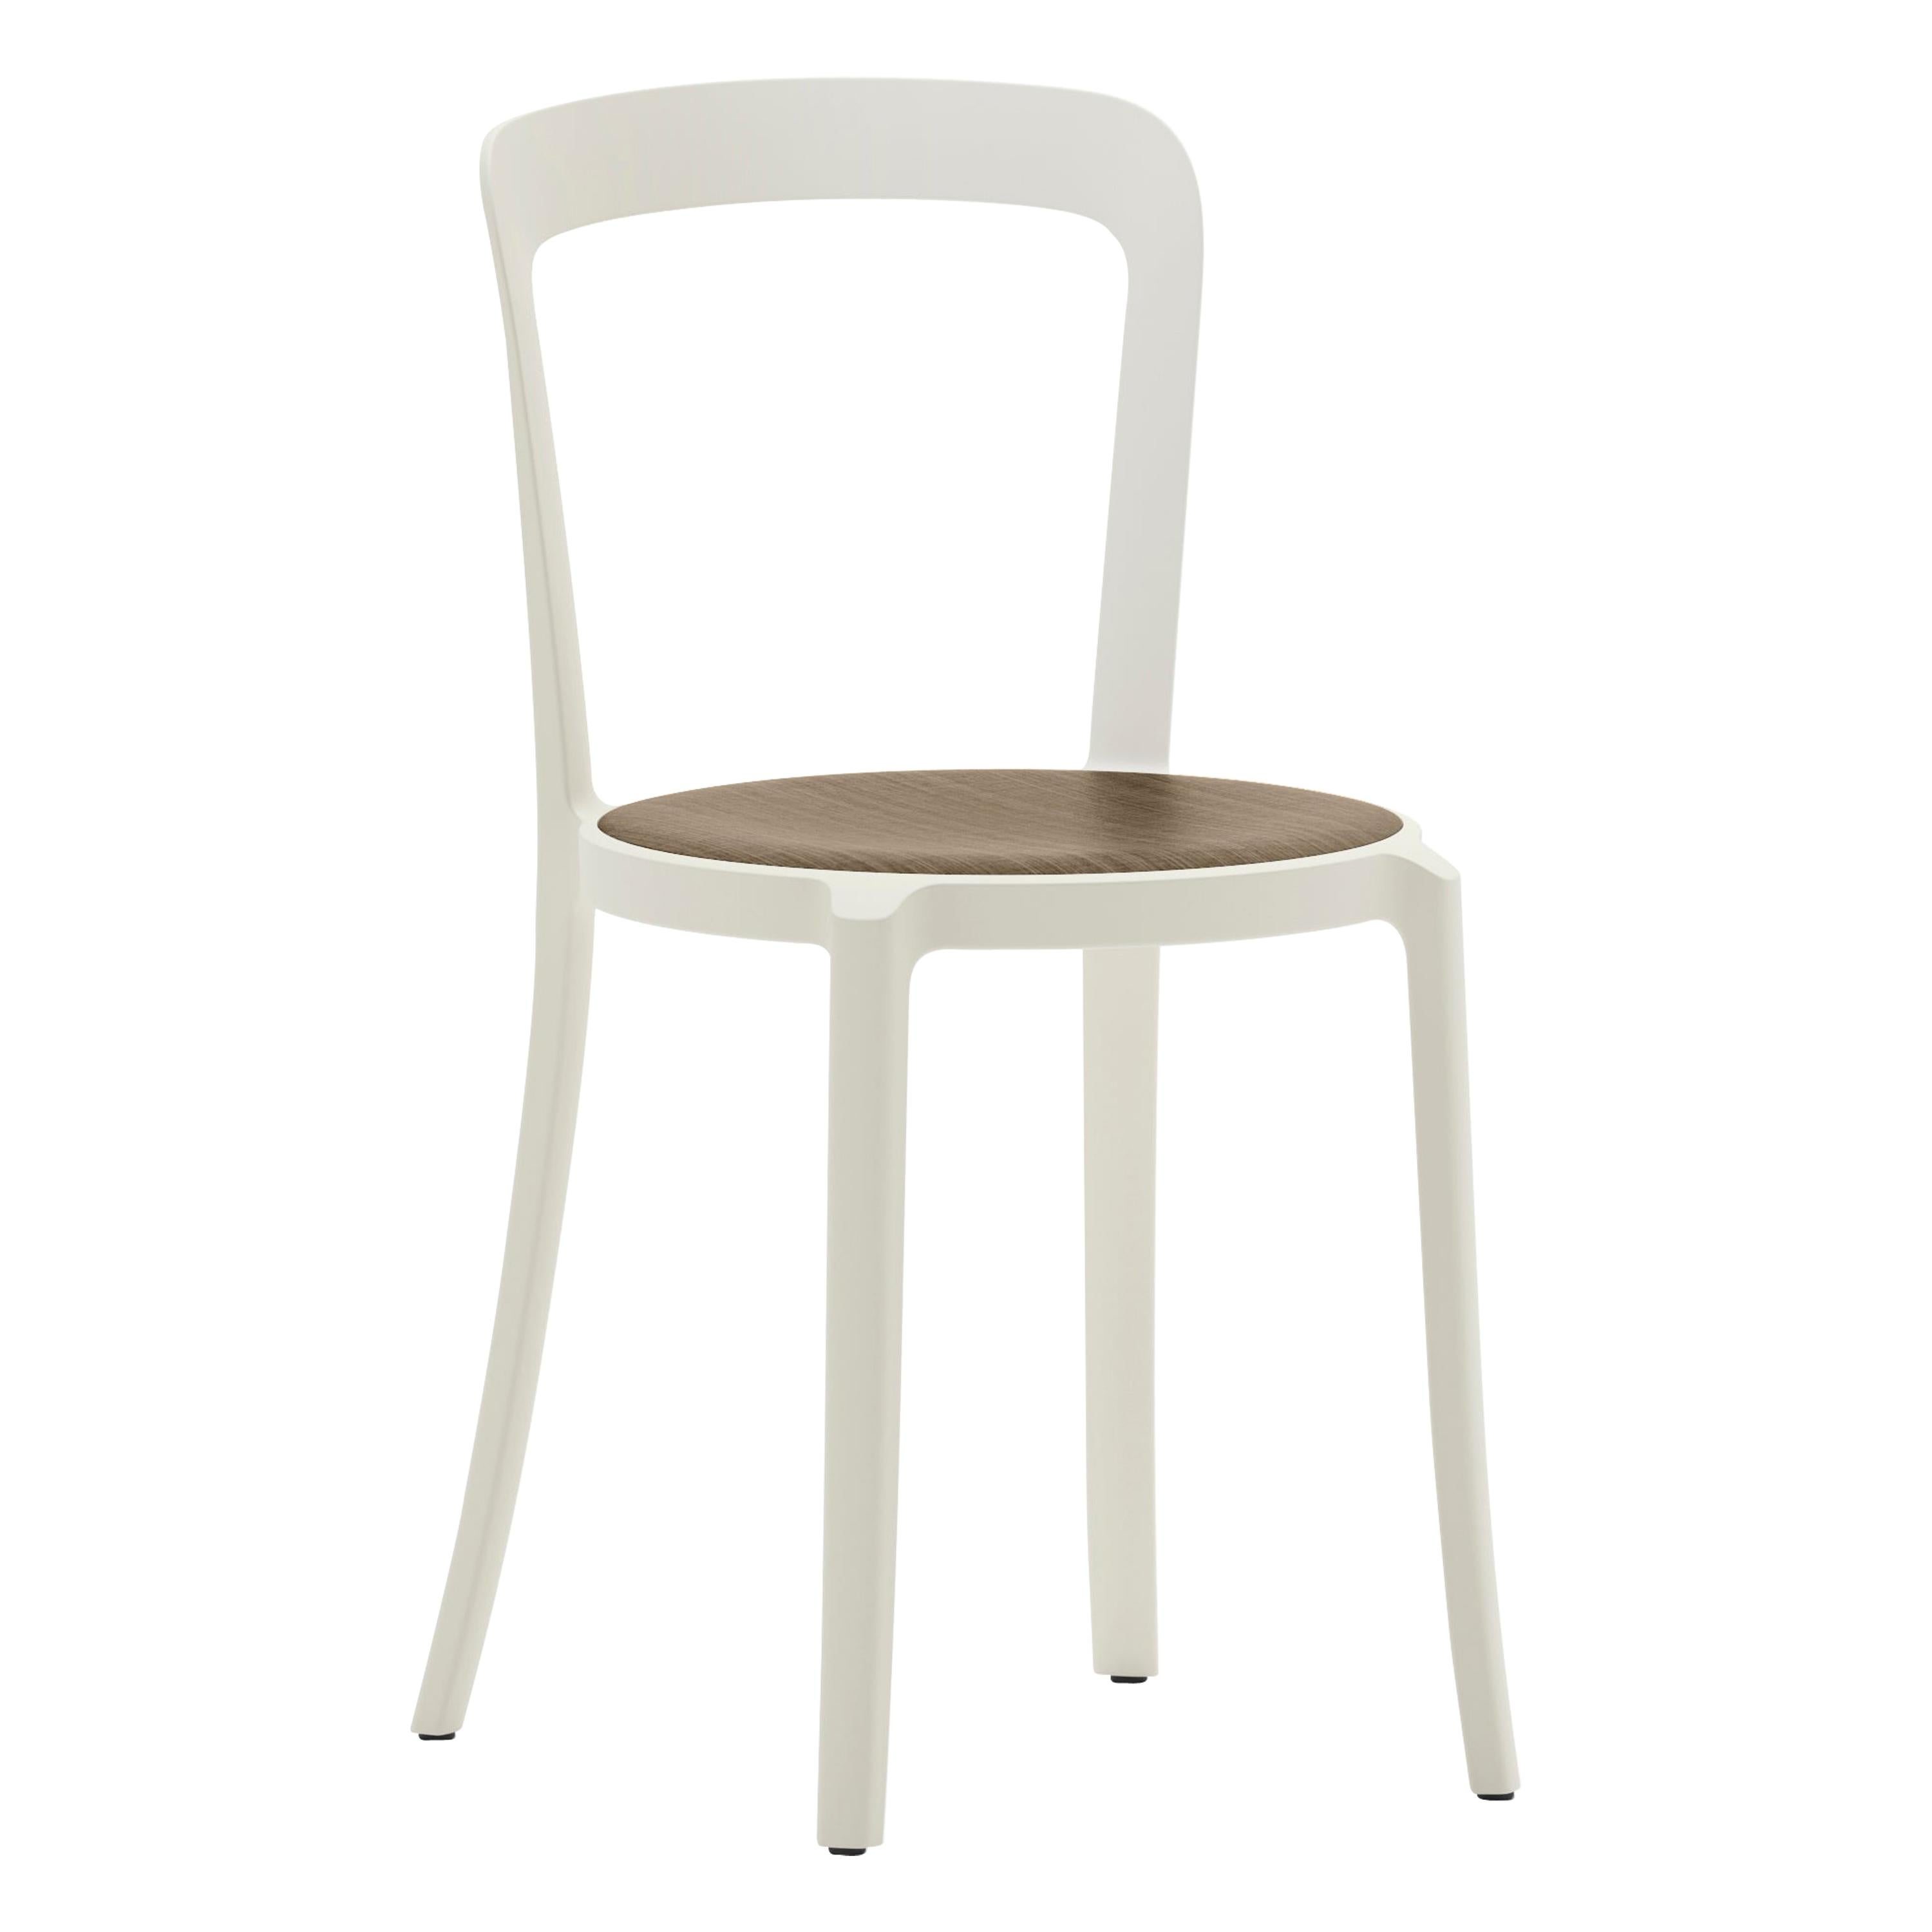 Emeco On & On Stacking Chair in White with Walnut seat by Barber & Osgerby